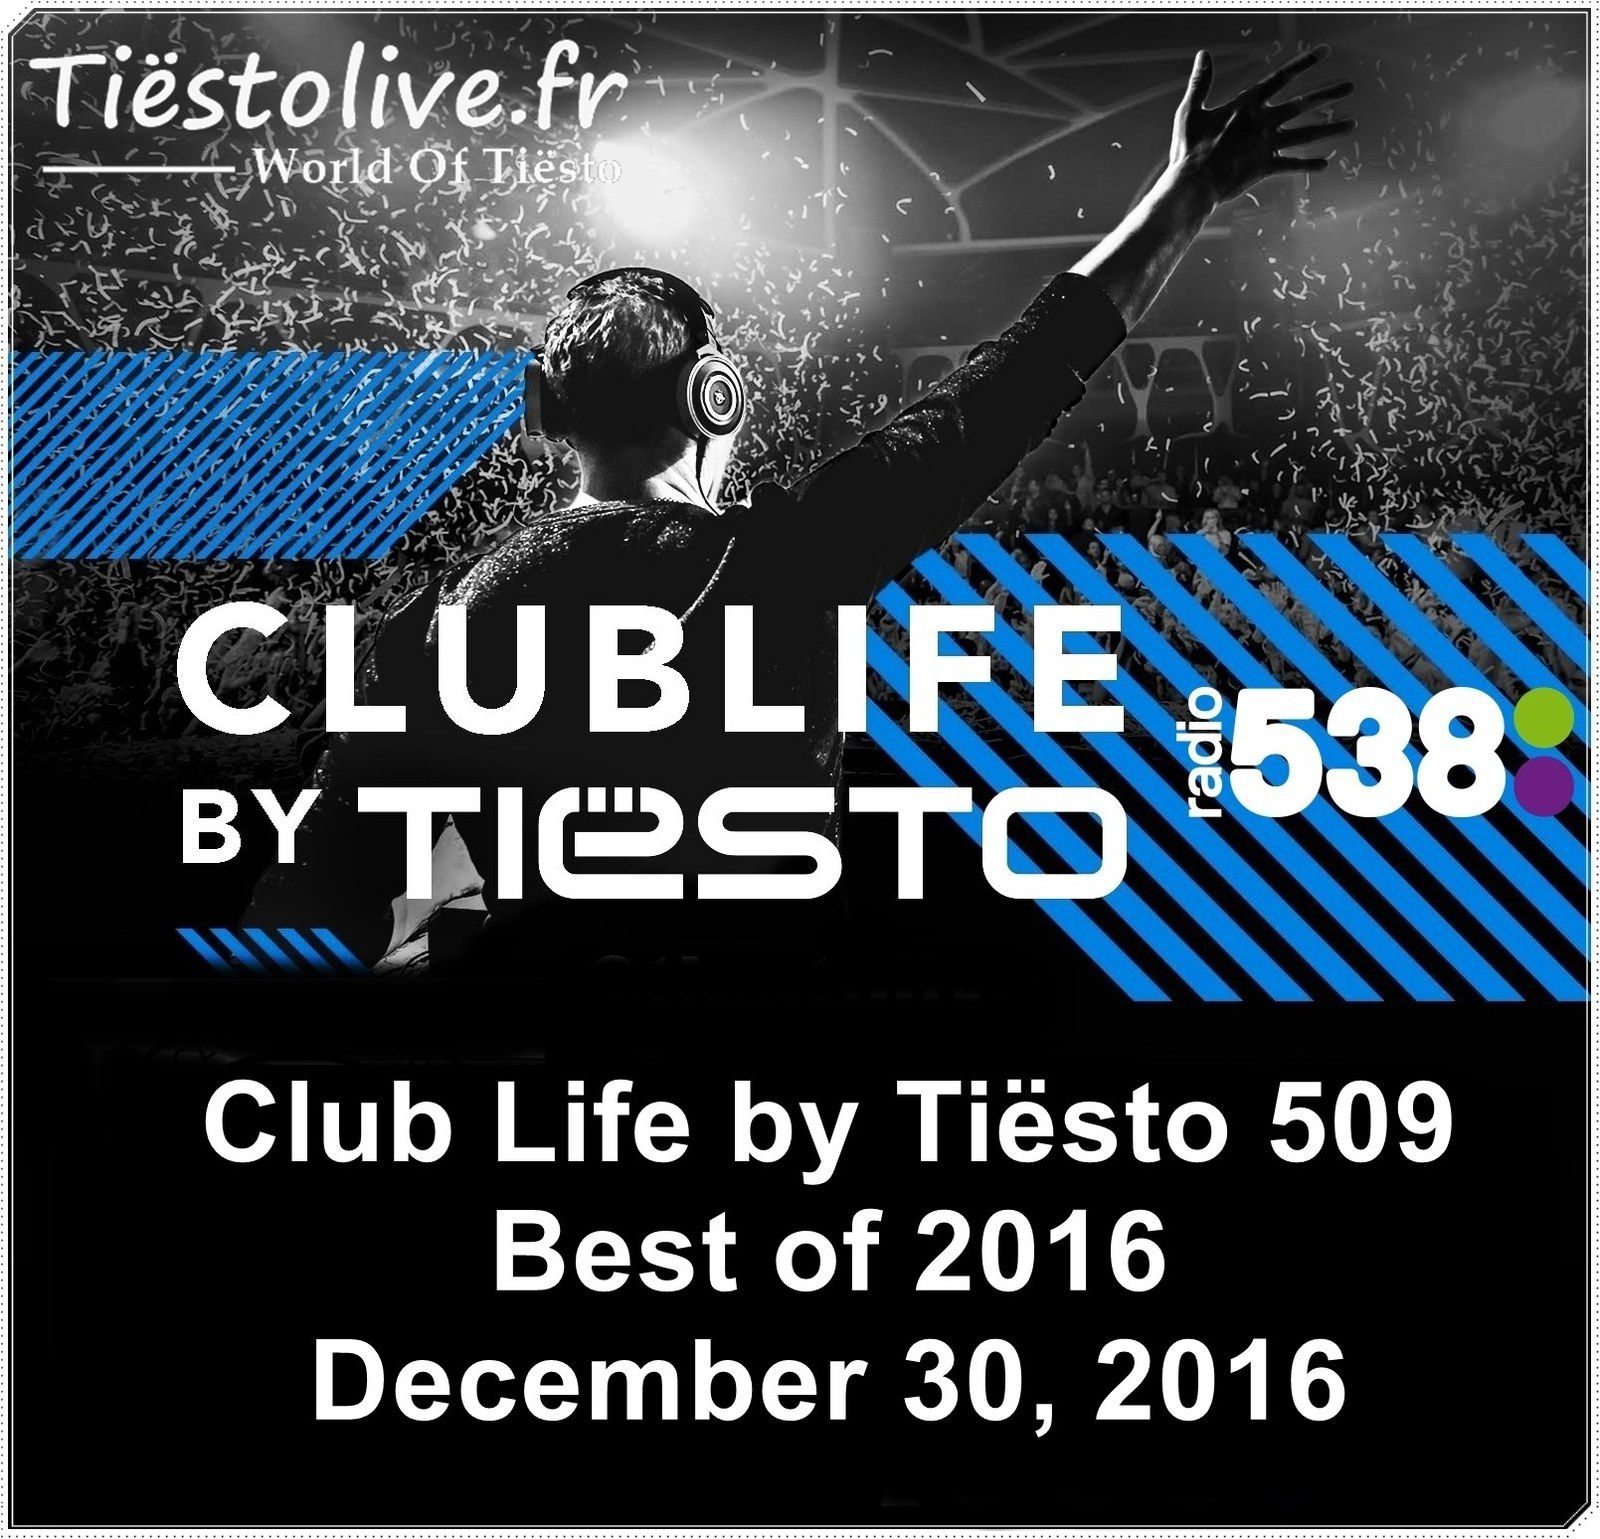 Club Life by Tiësto 509 - Best of 2016 - December 30, 2016